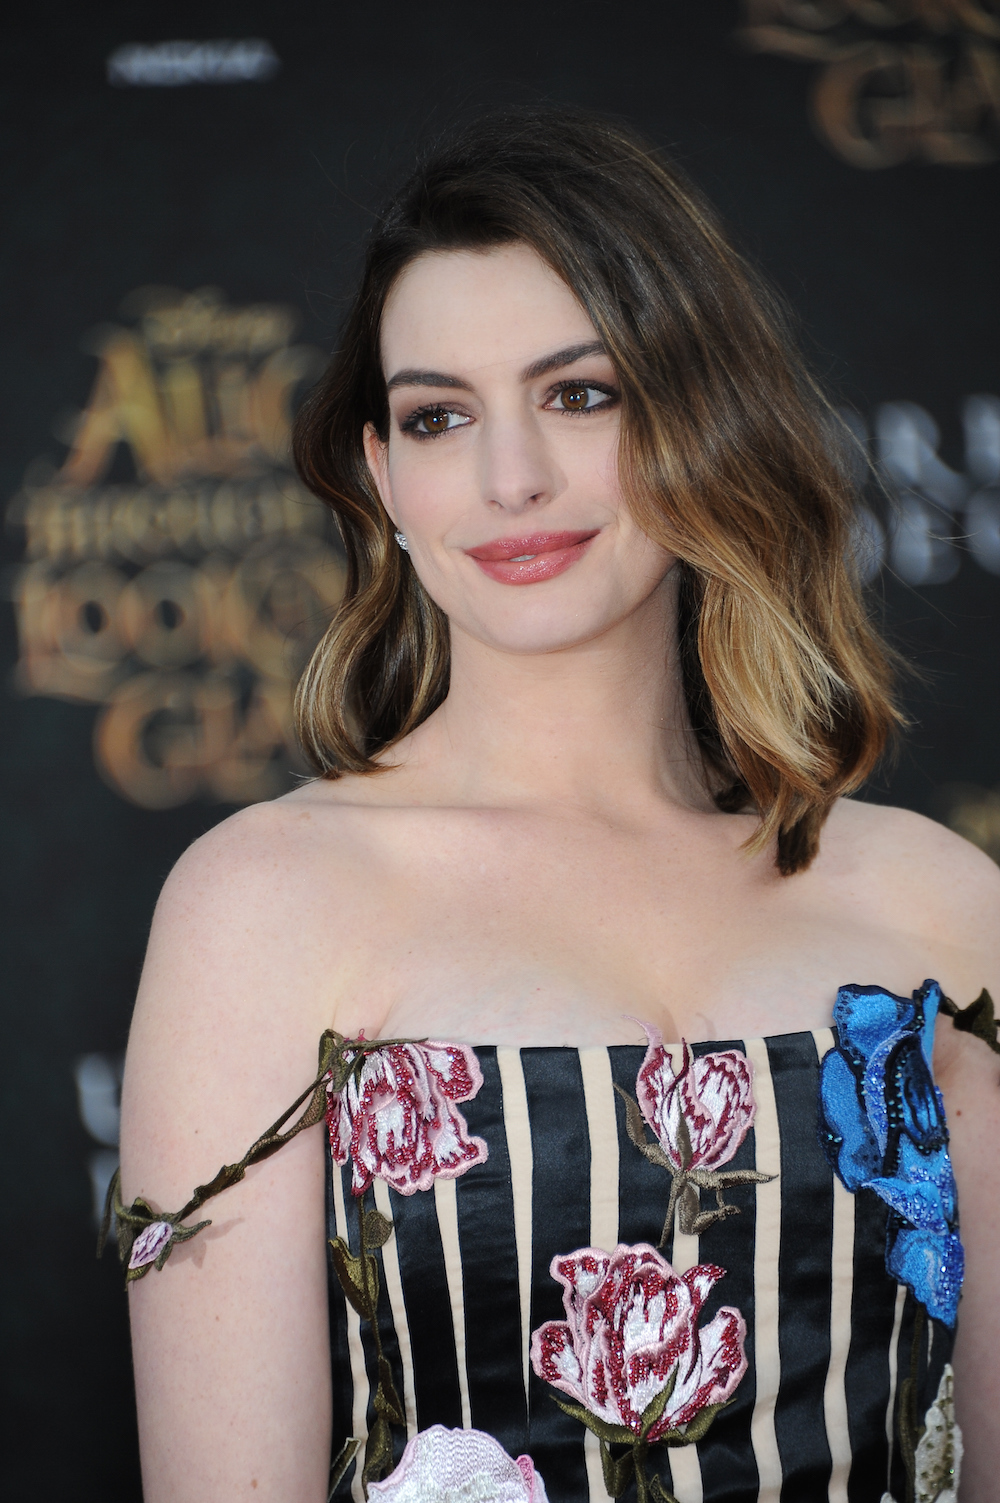 Anne Hathaways Dress Is Perfect For This Alice Through The Looking